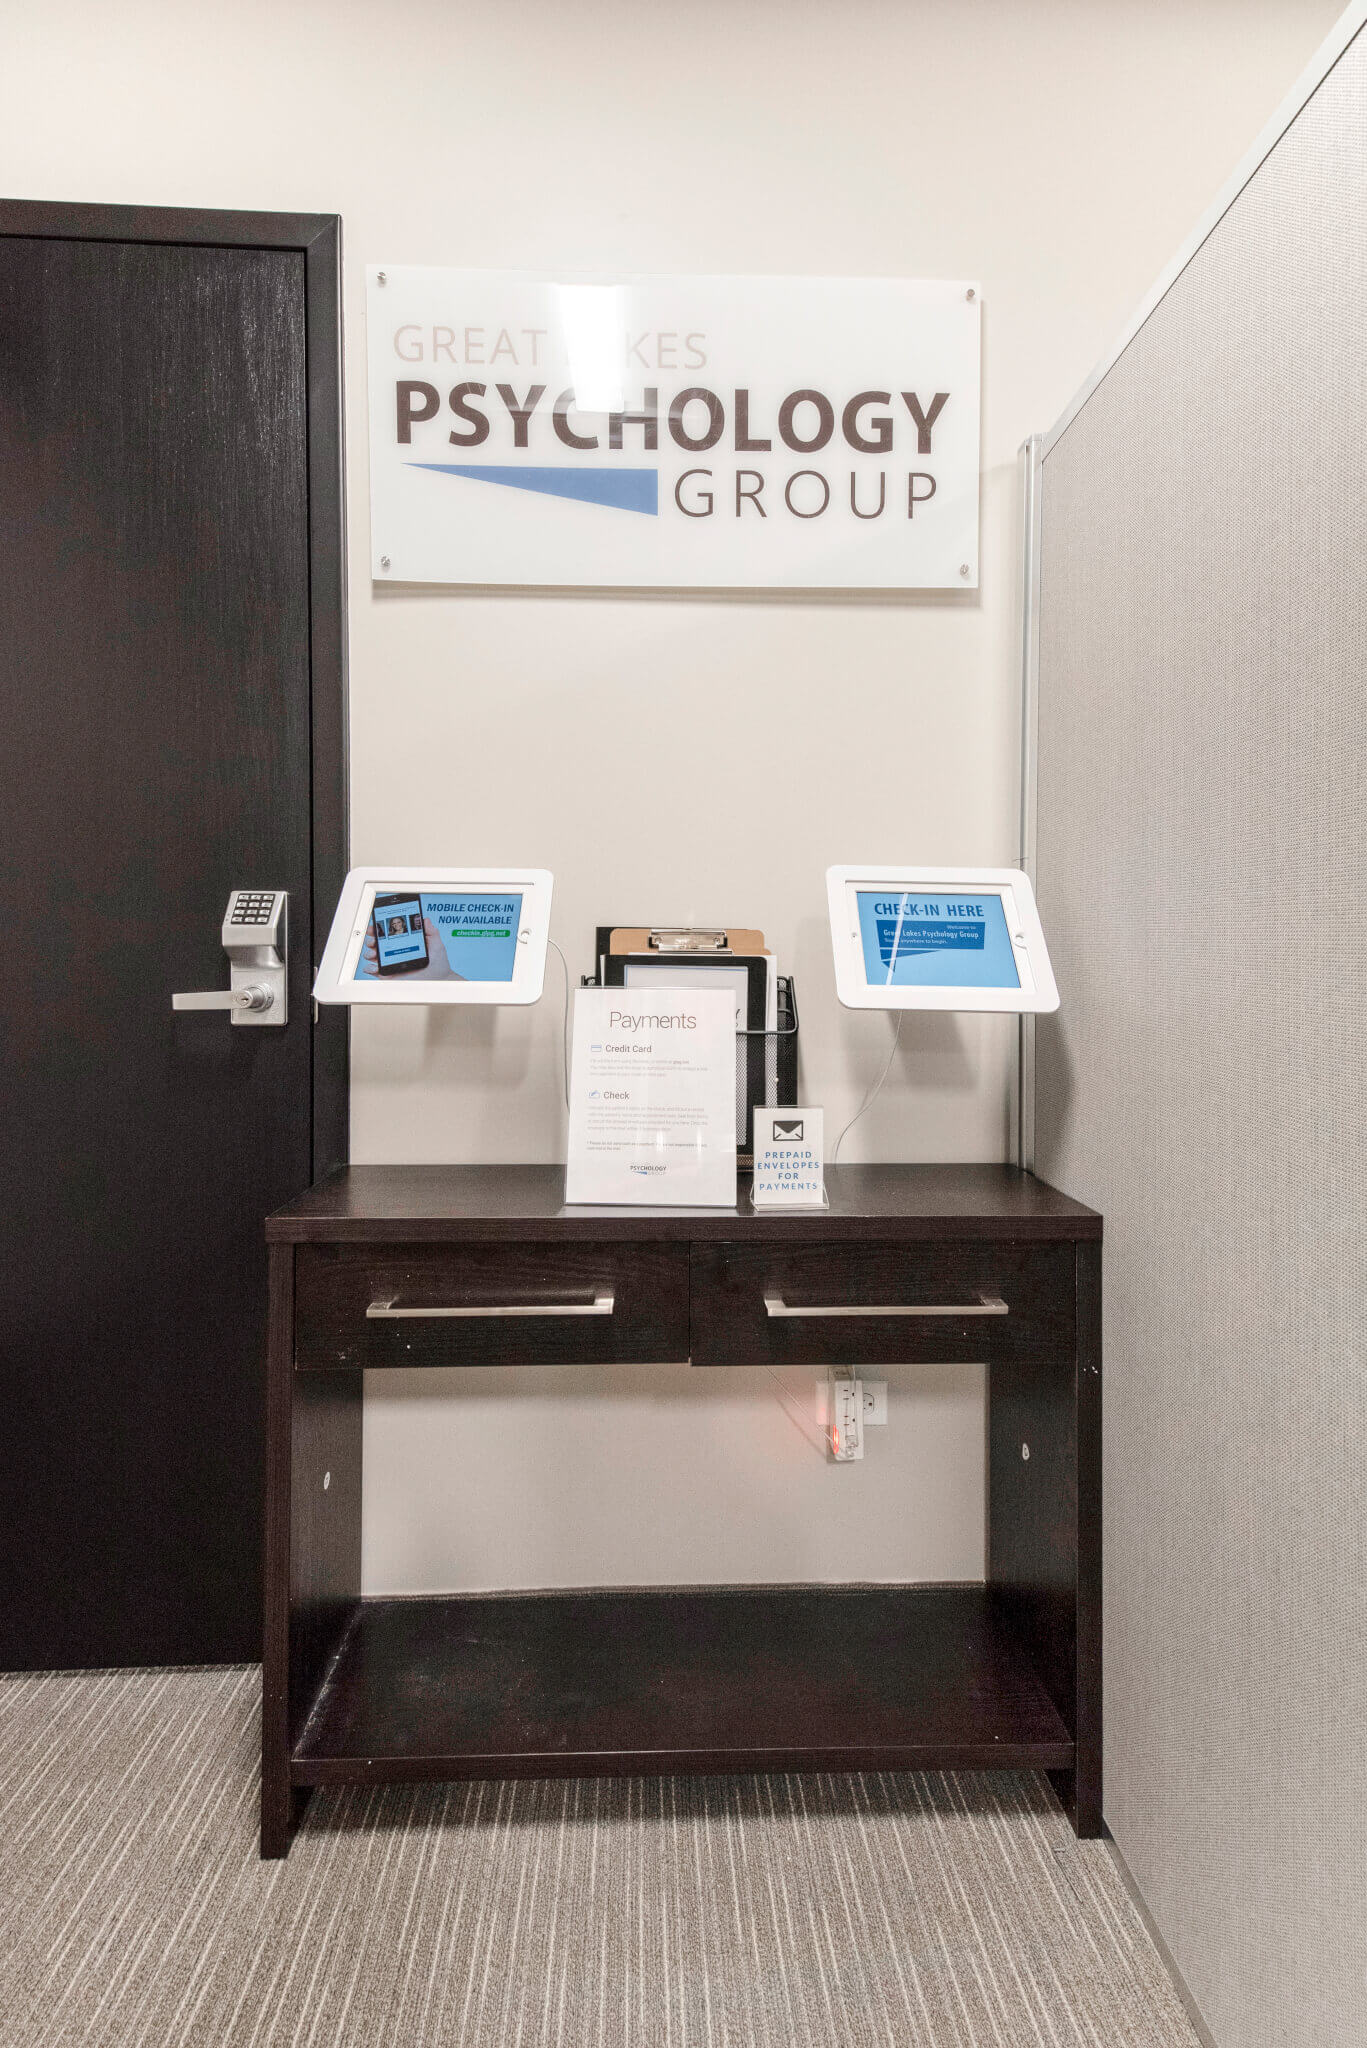 Glpg Great Lakes Psychology Group Counseling Therapy Schaumburg Illinois Kiosk